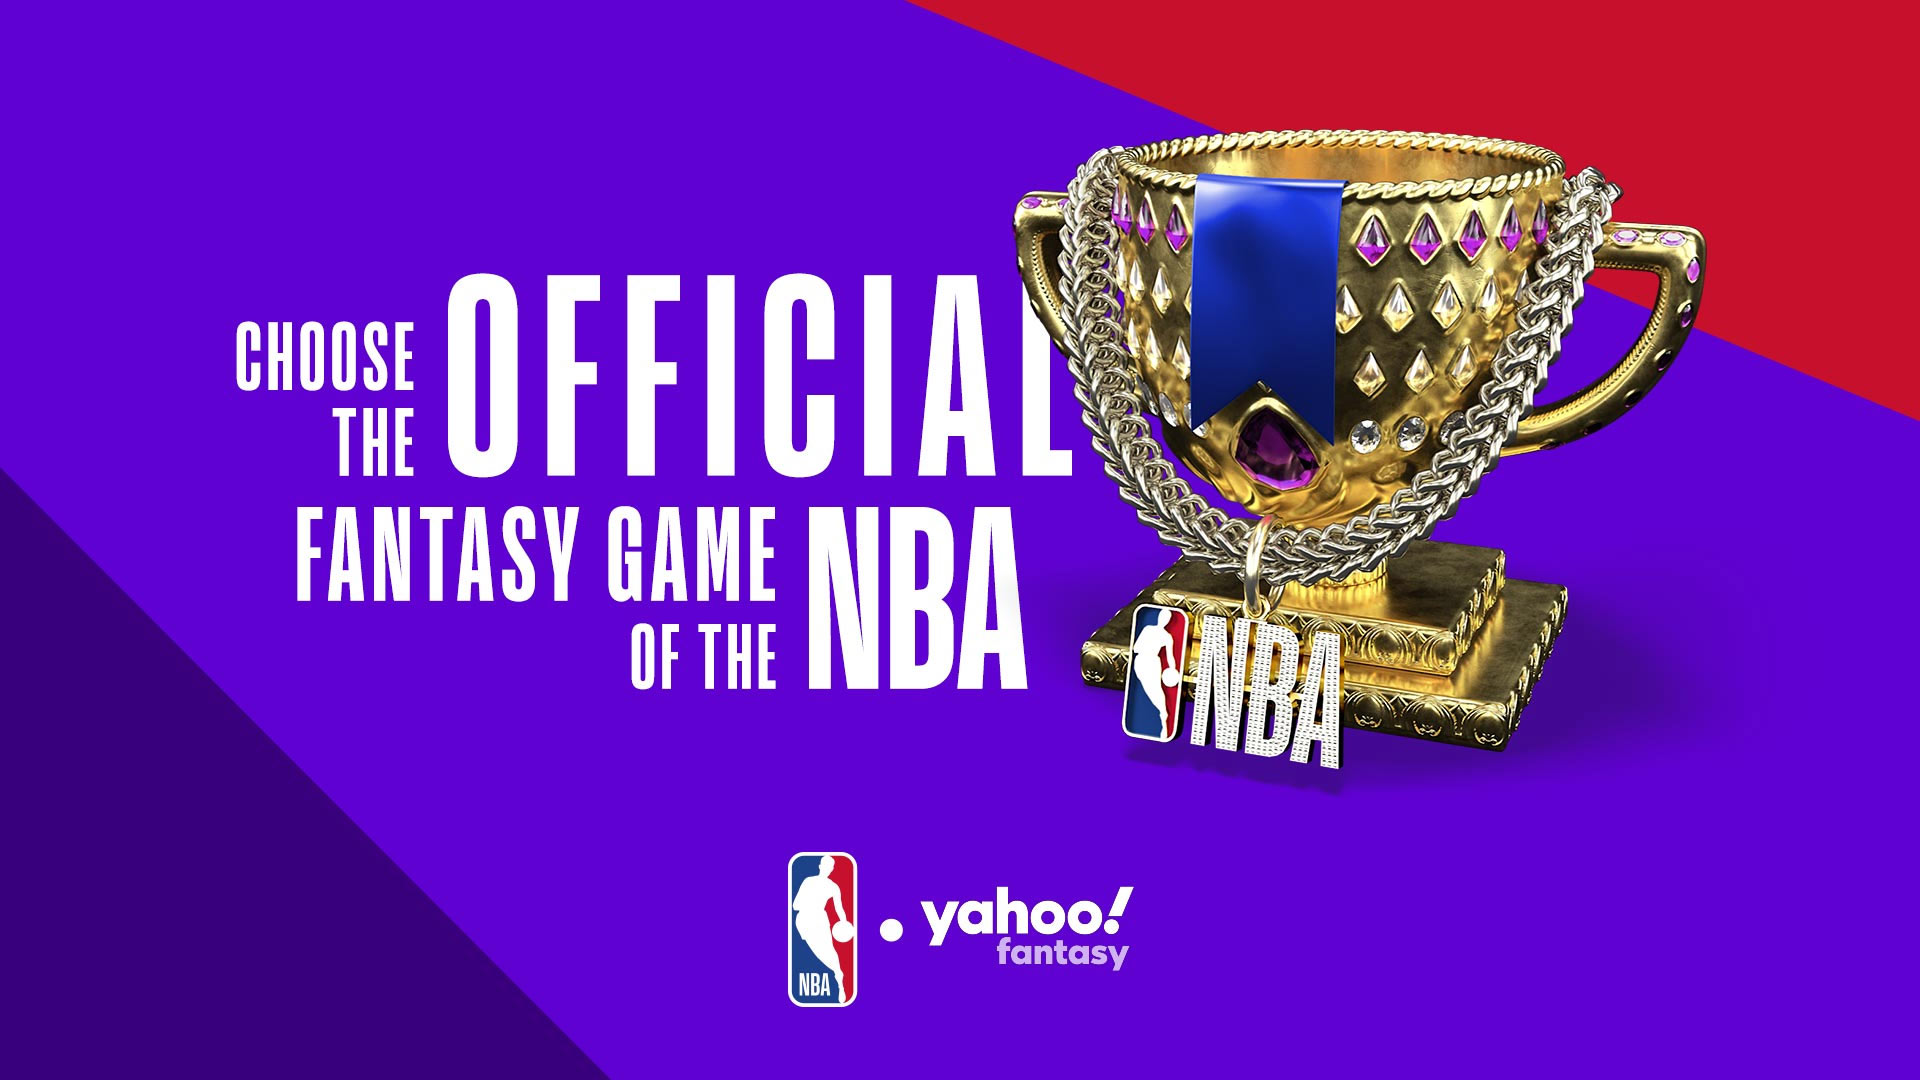 Play the Official Fantasy Game of the NBA on Yahoo